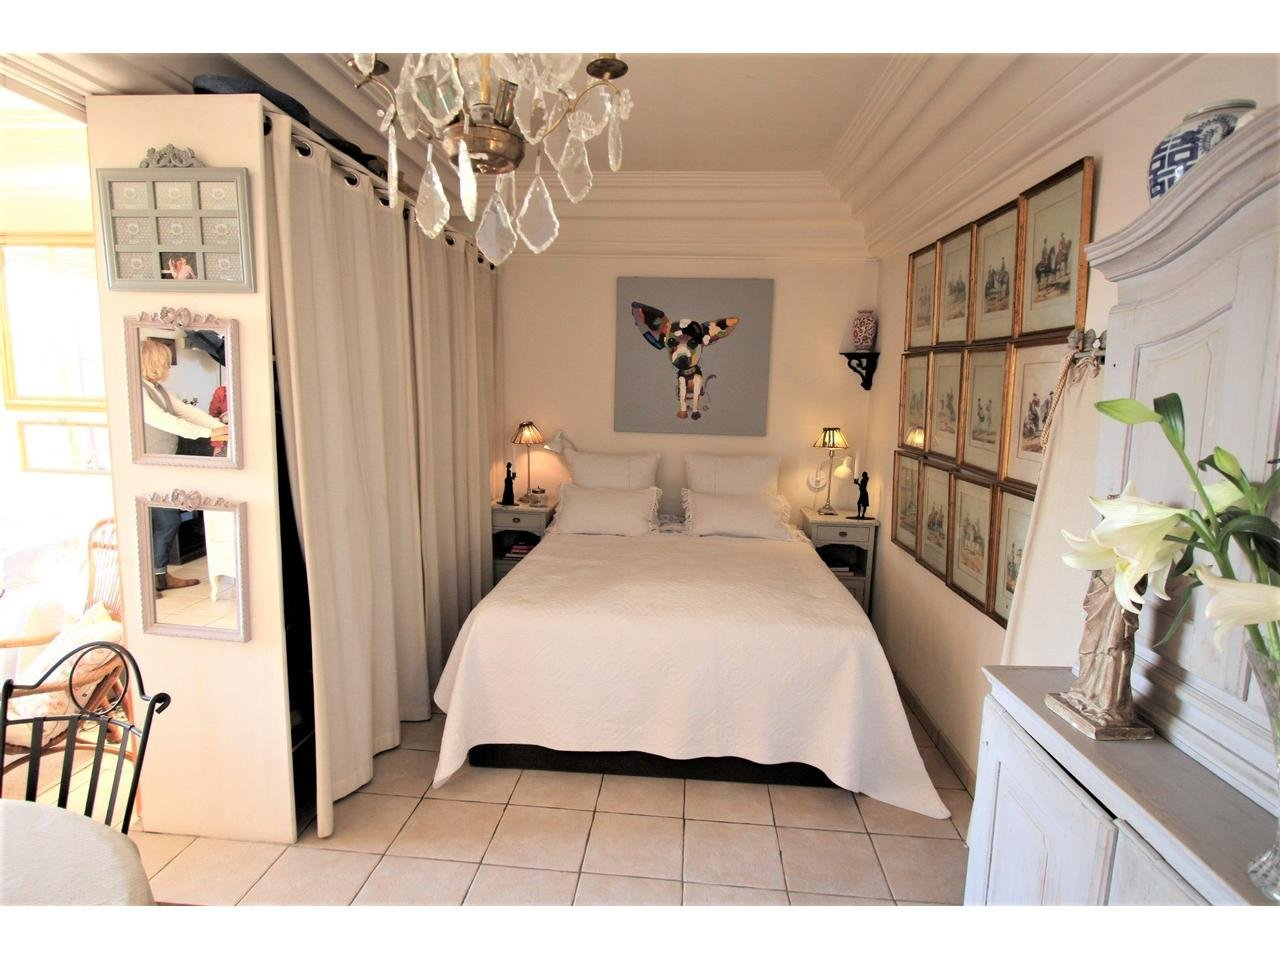 Appartement  2 Rooms 41m2  for sale   360000 €